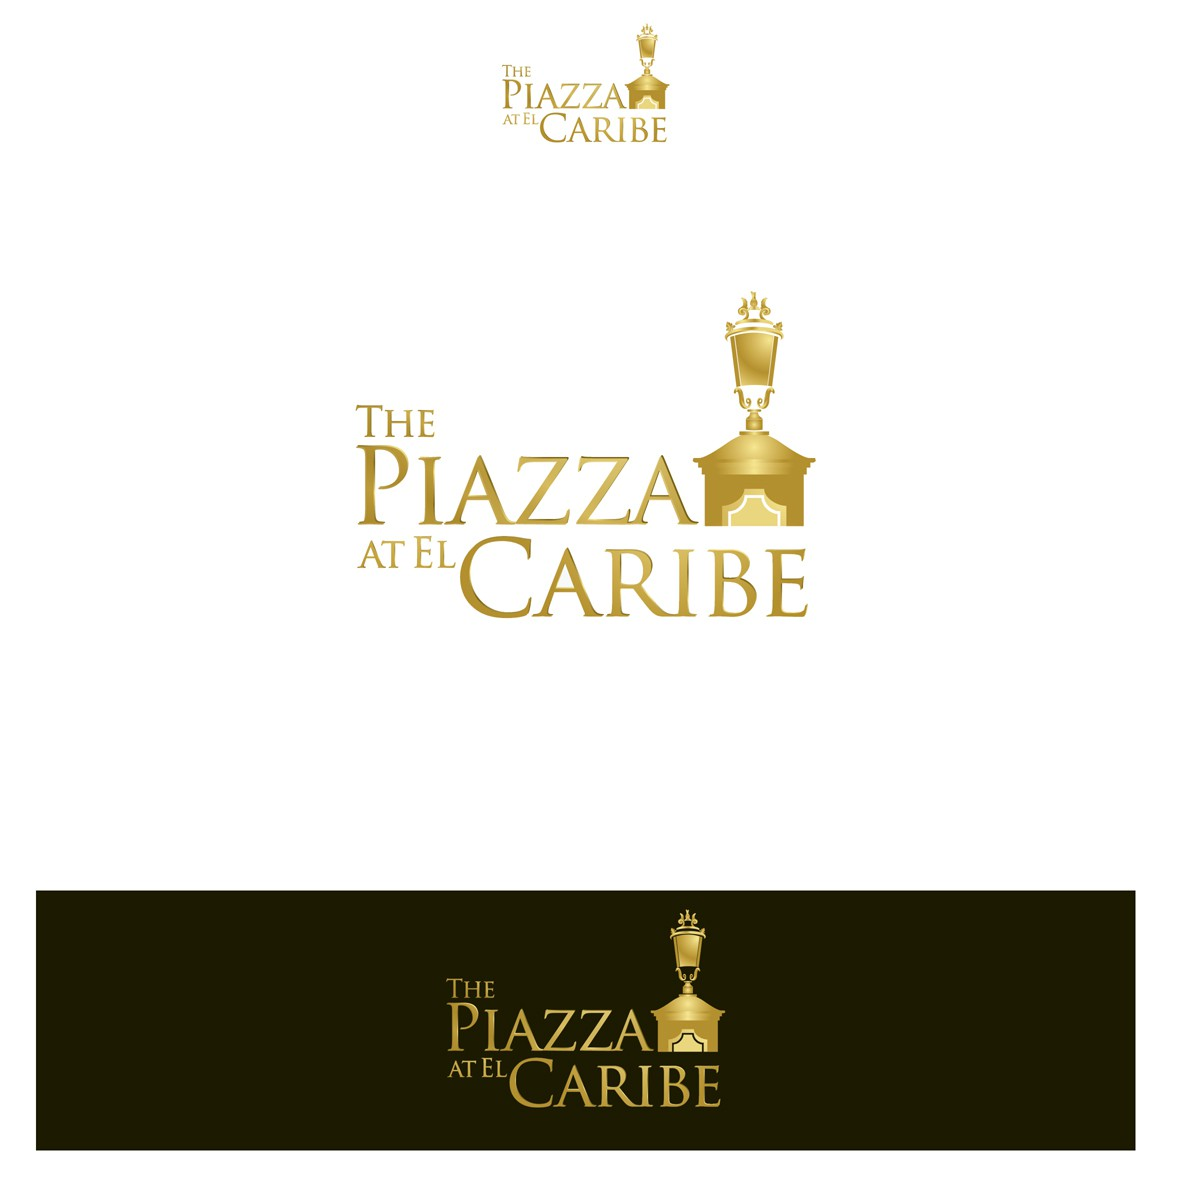 New logo wanted for The Piazza at El Caribe